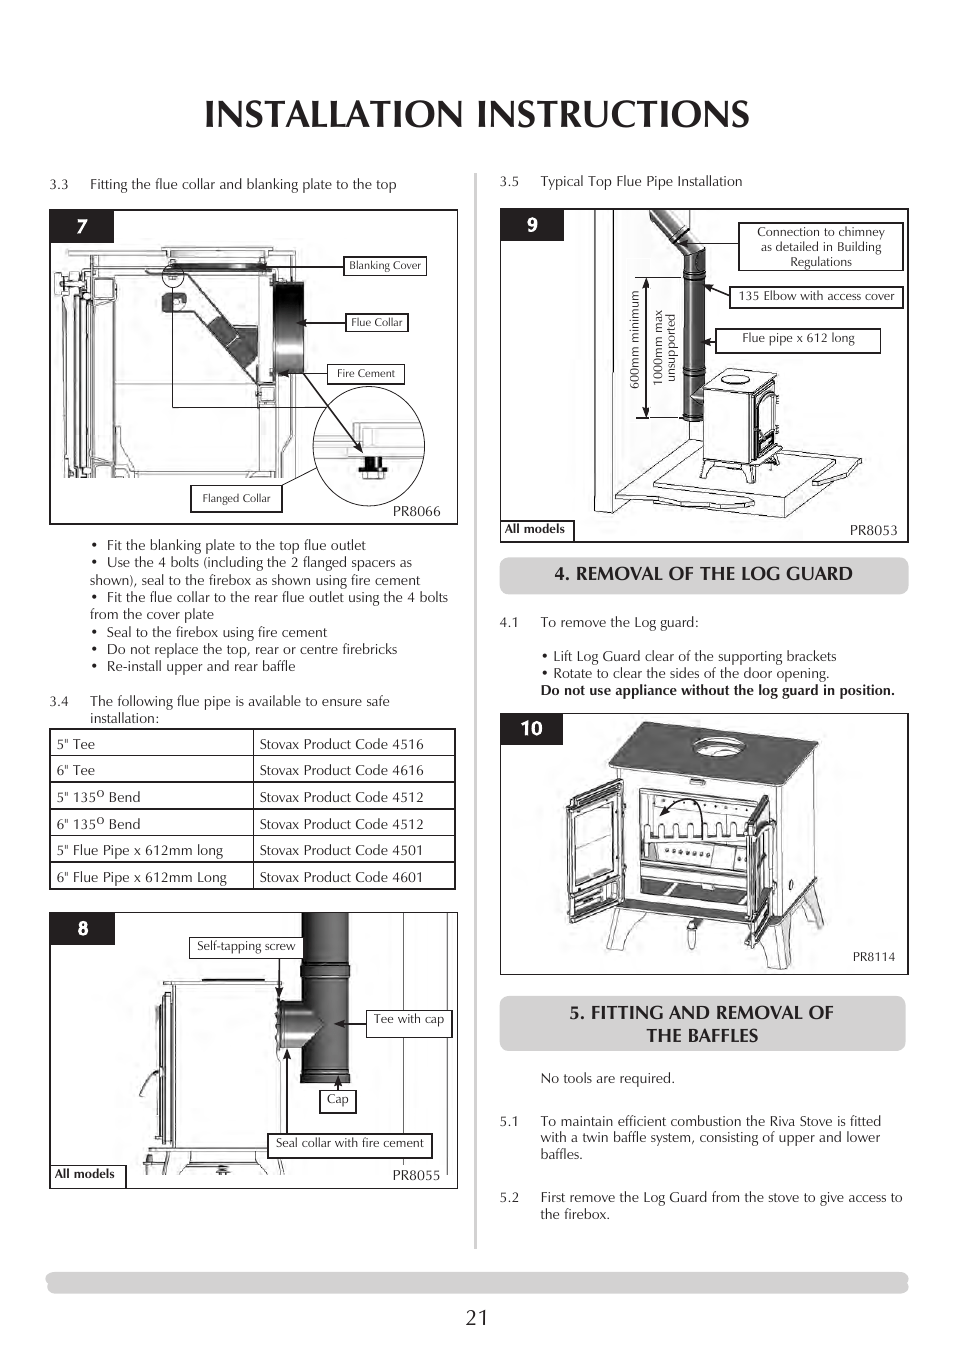 Installation instructions, Removal of the log guard